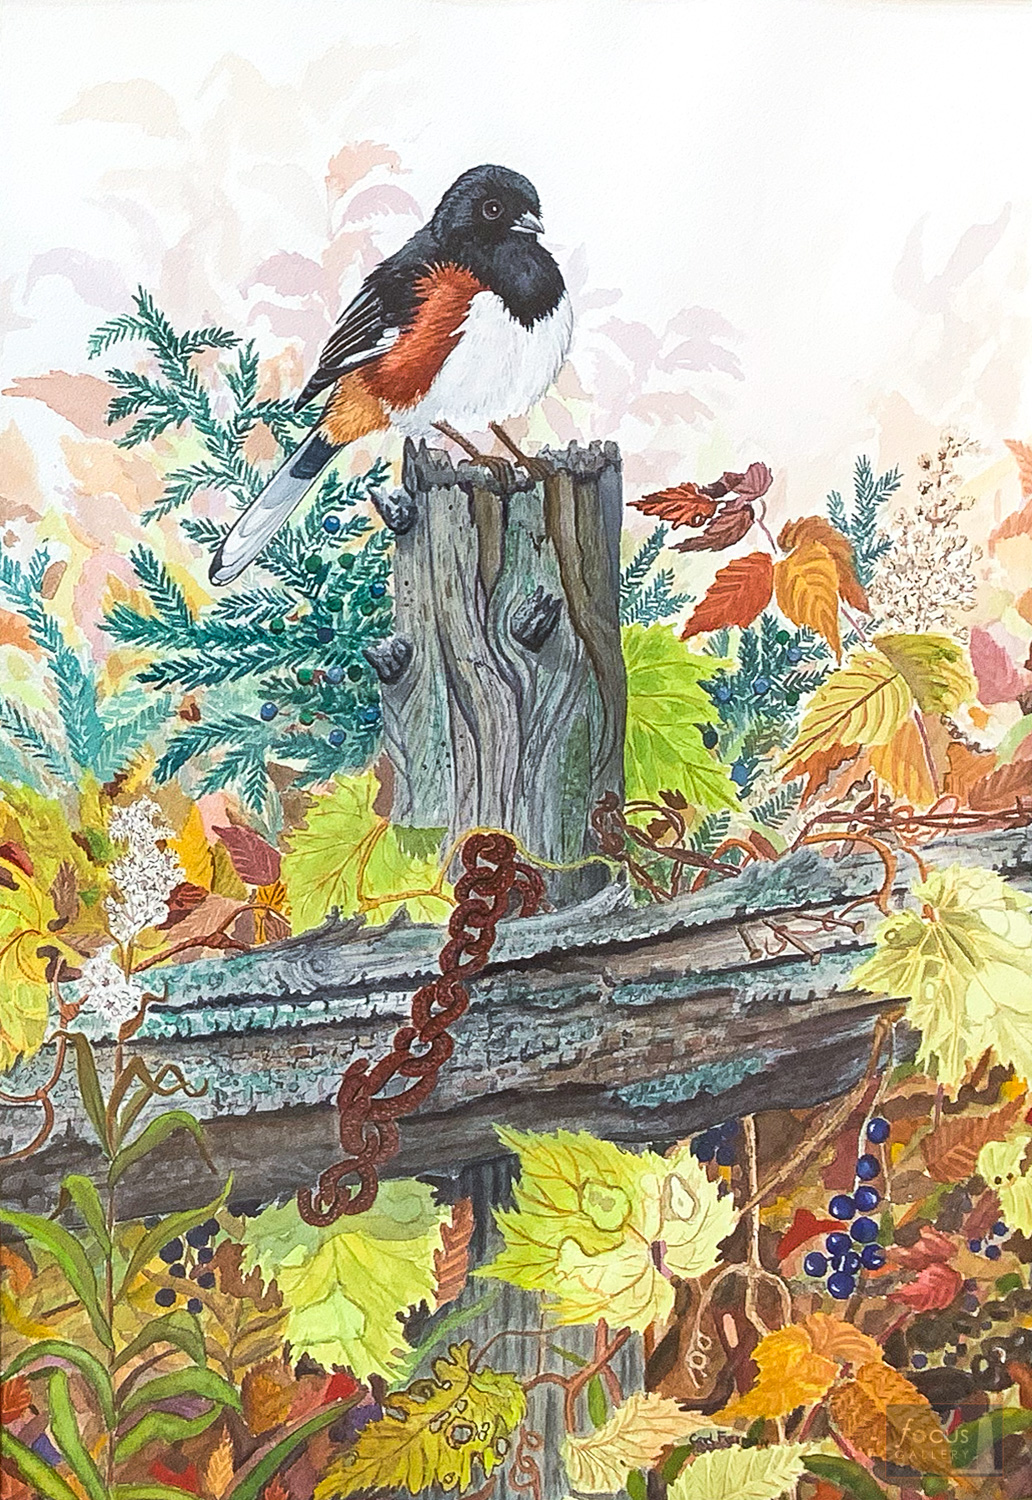 Original watercolor painting of an Eastern Towhee bird on an old wooden fence.